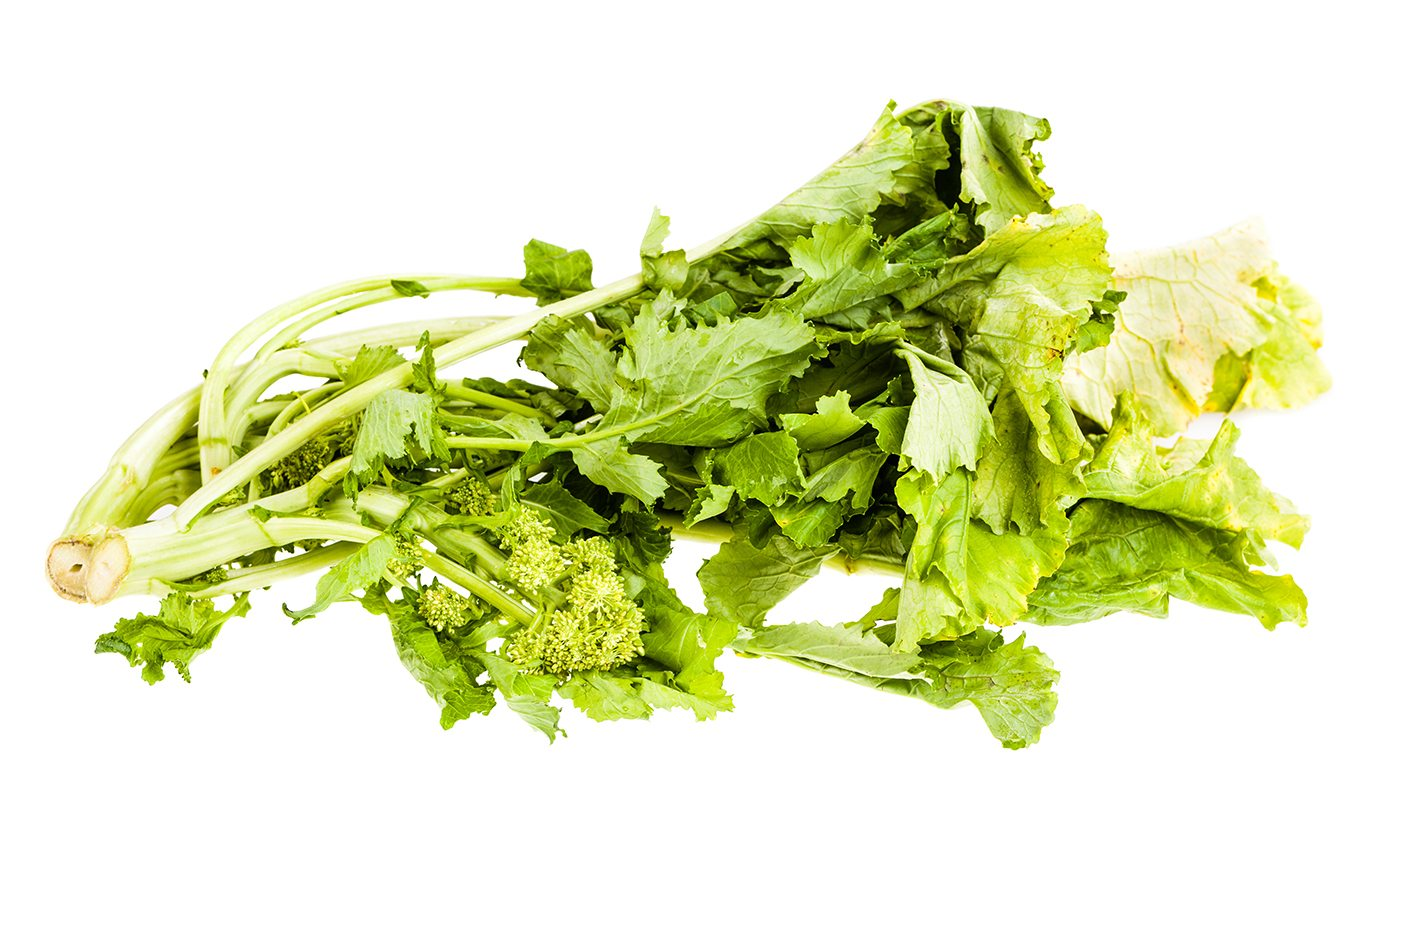 a heap of turnip greens isolated over a white background